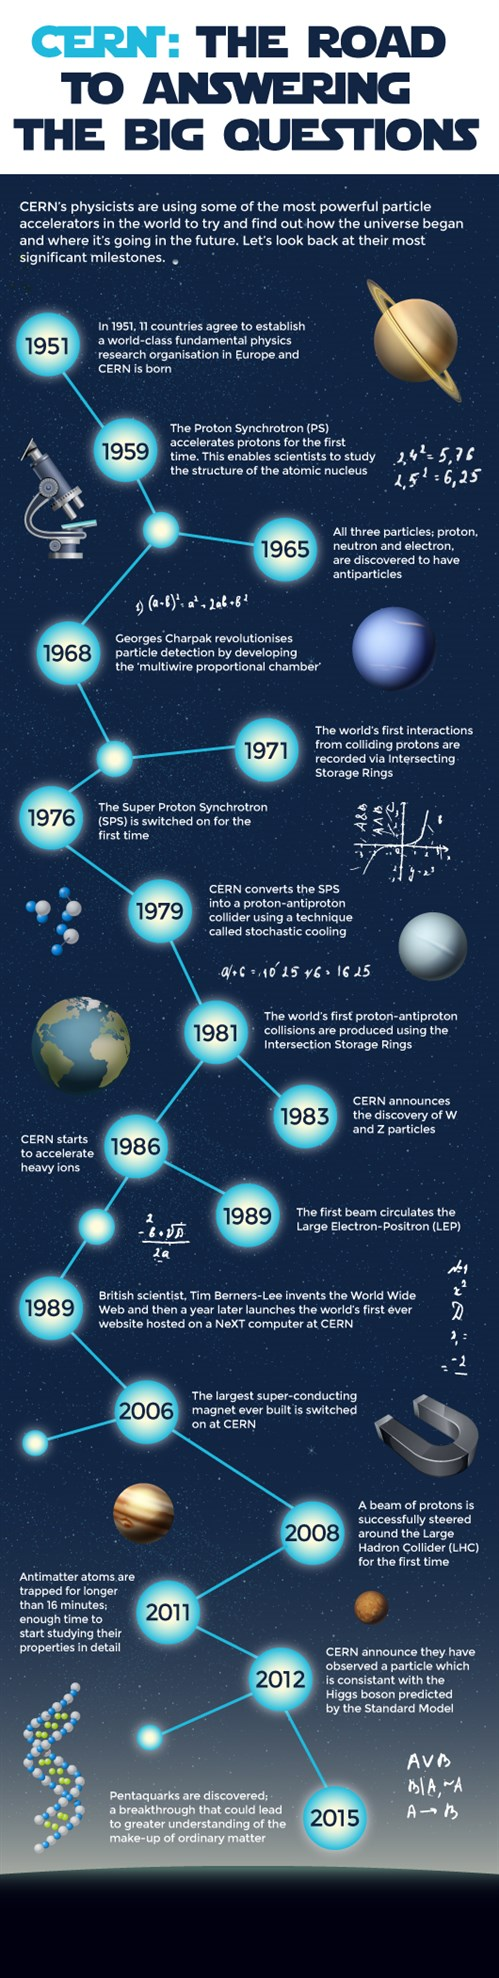 409307 Wst Cern Centre History Infographic